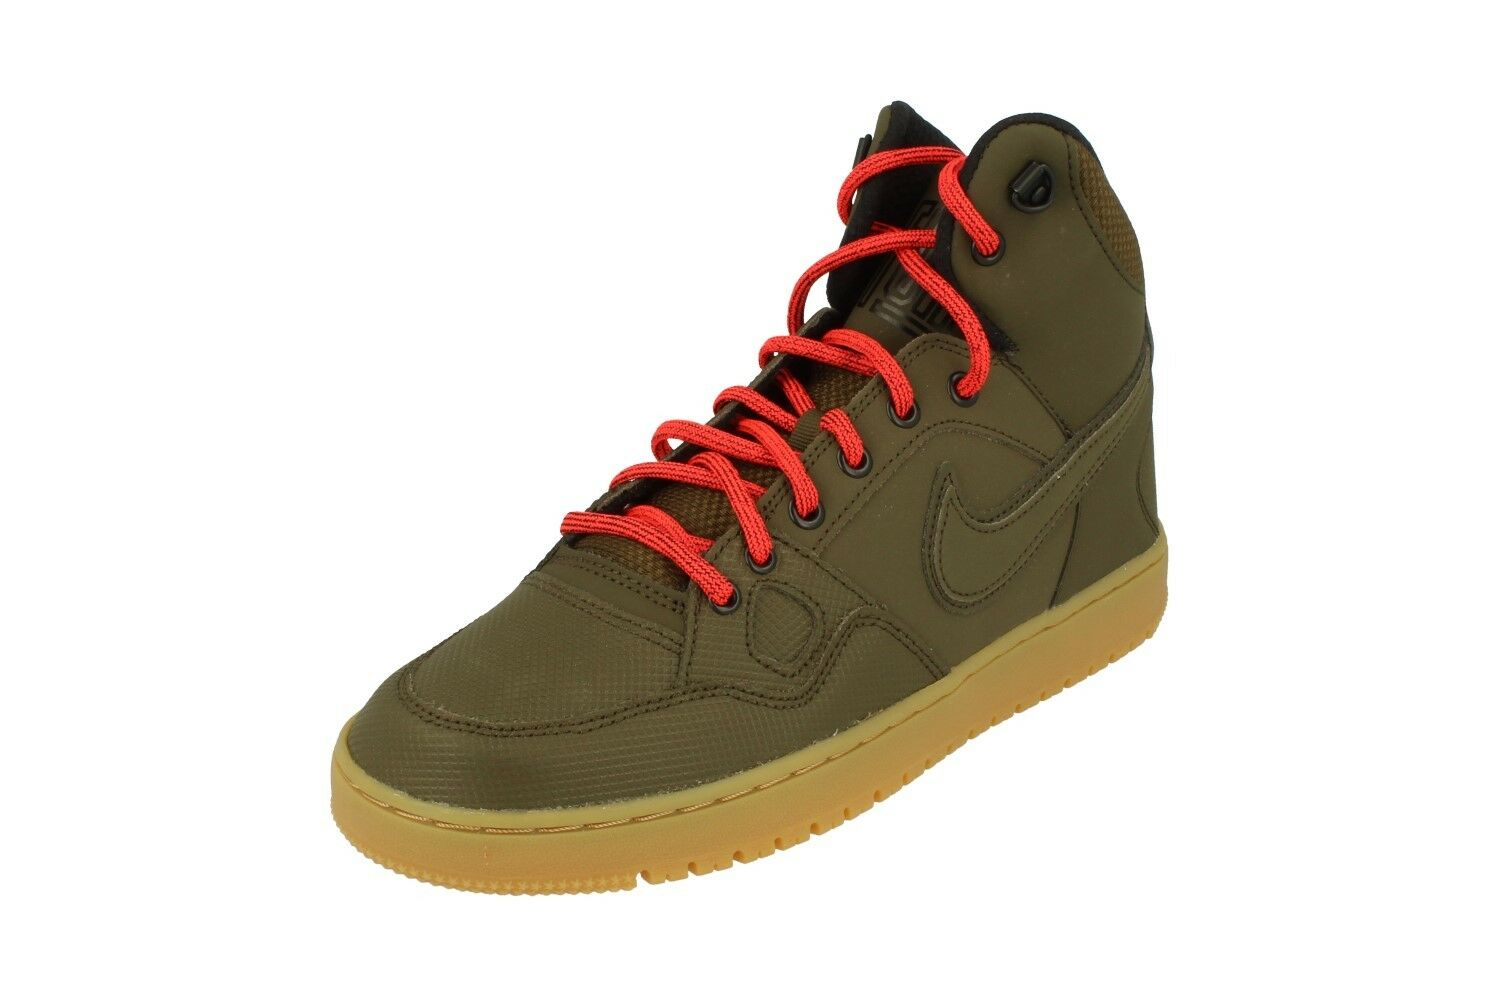 Nike Son Of Force Mid Winter Mens Hi Top Trainers 807242 Sneakers shoes 330